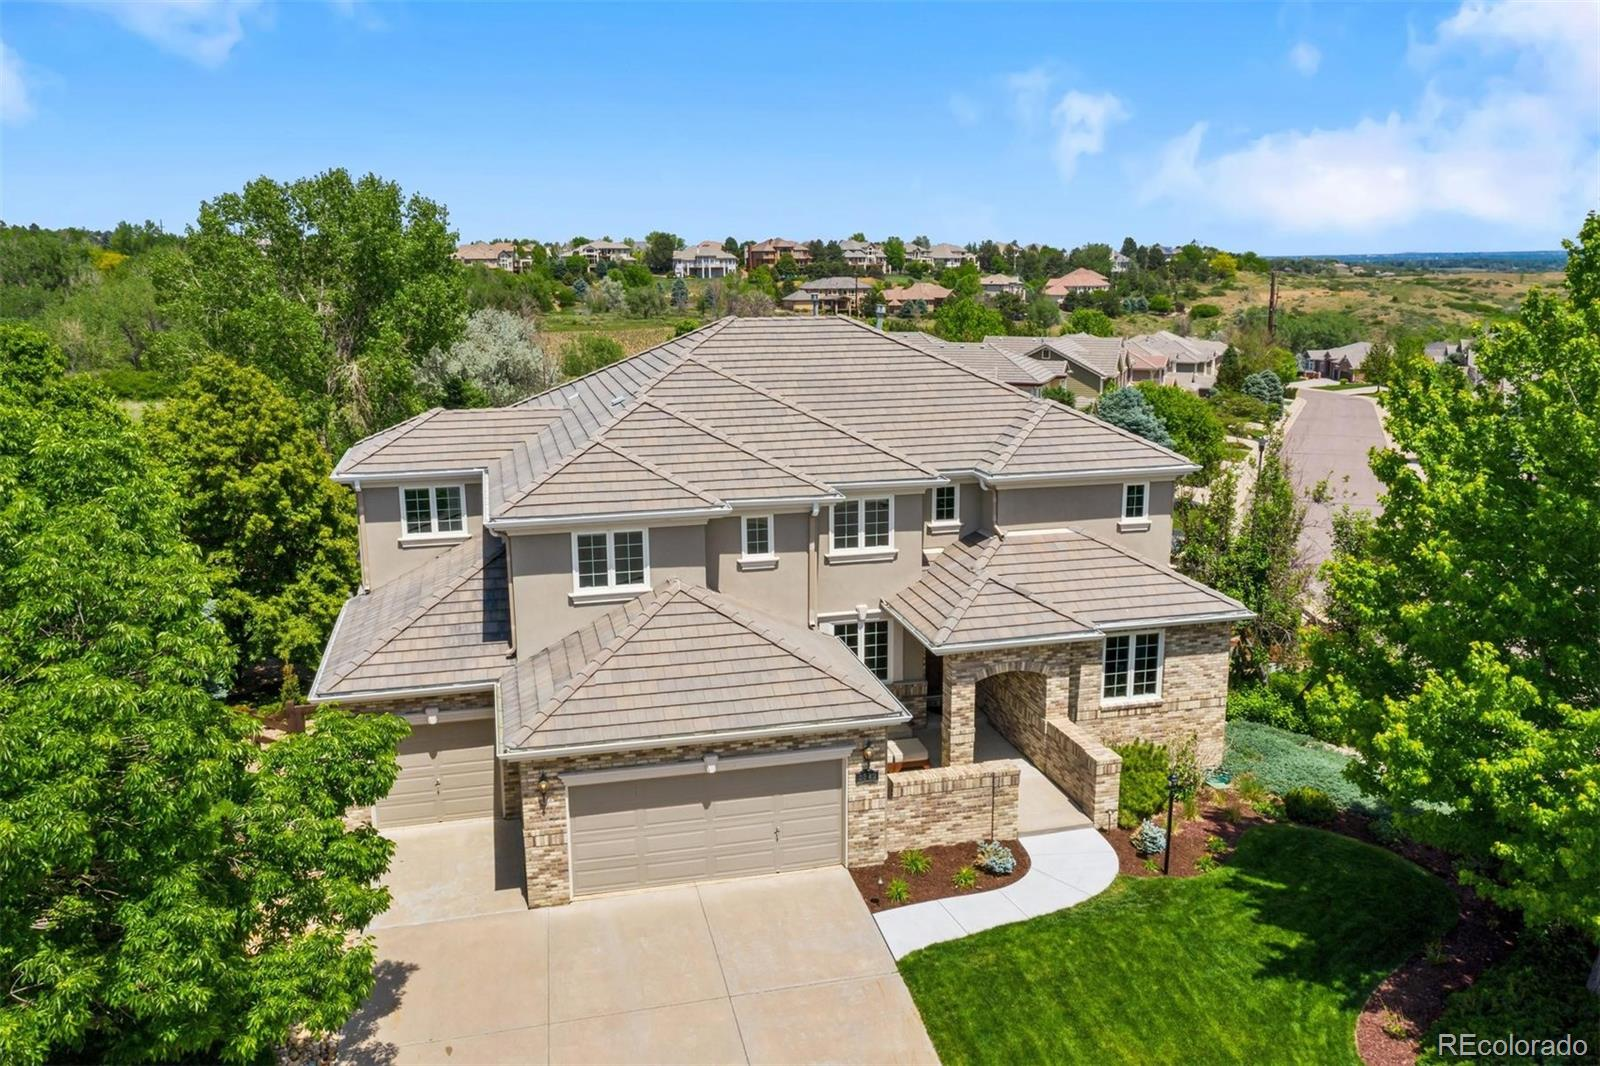 2342 S Tabor Way Property Photo - Lakewood, CO real estate listing